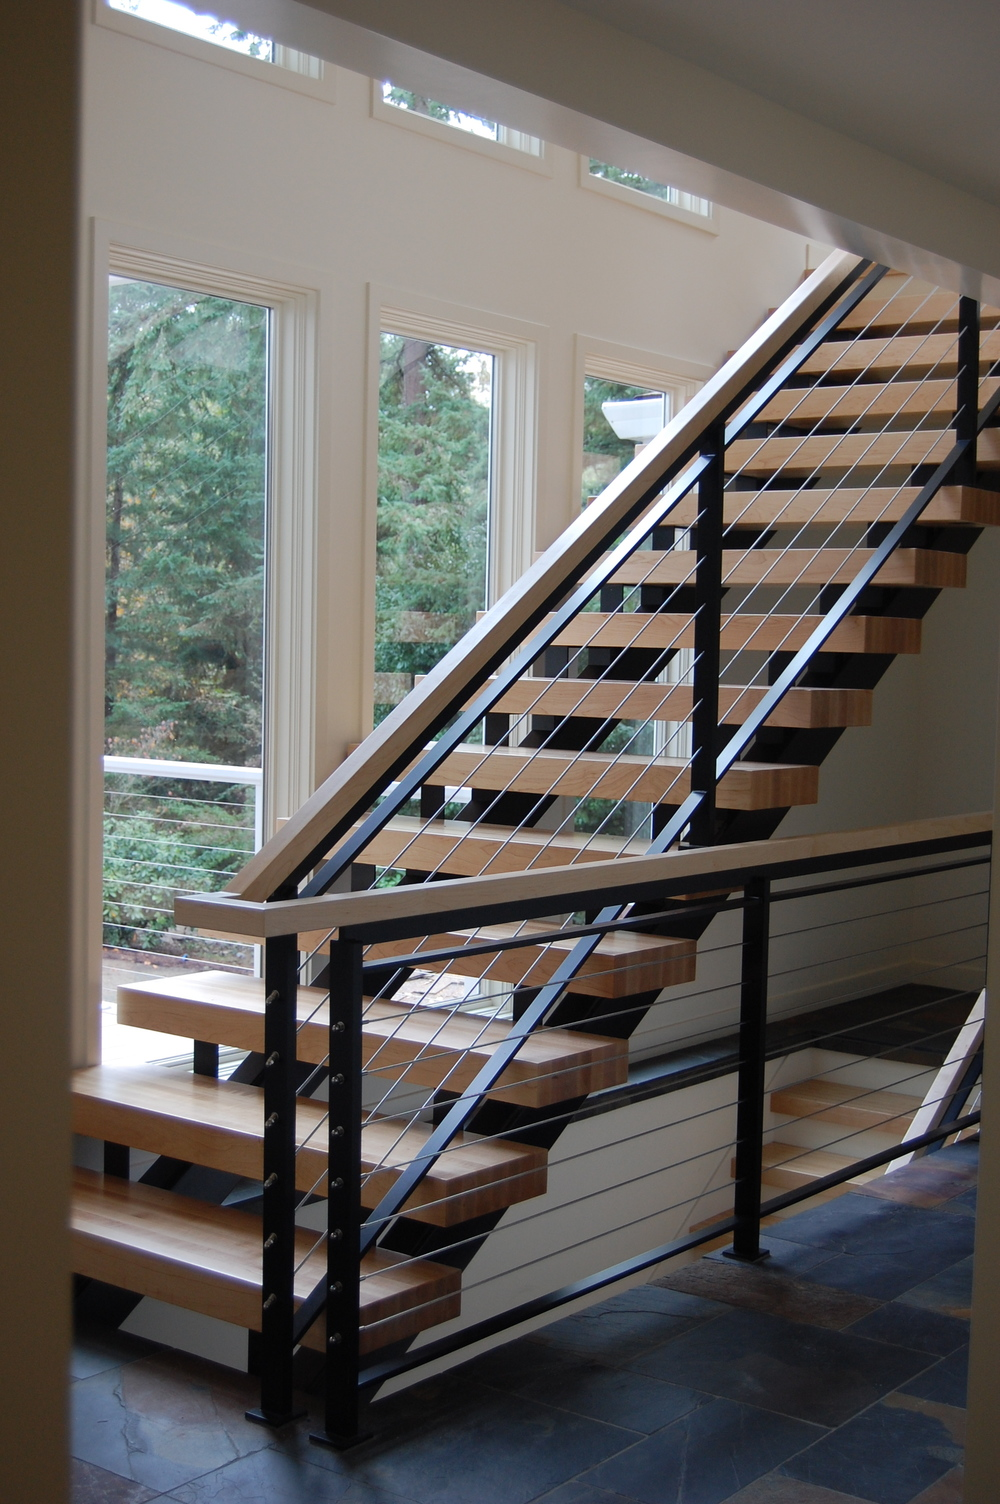 Painted steel staircase with 3 floors of continuous cable railing built out of solid flat bar.  Designed by MCM Construction